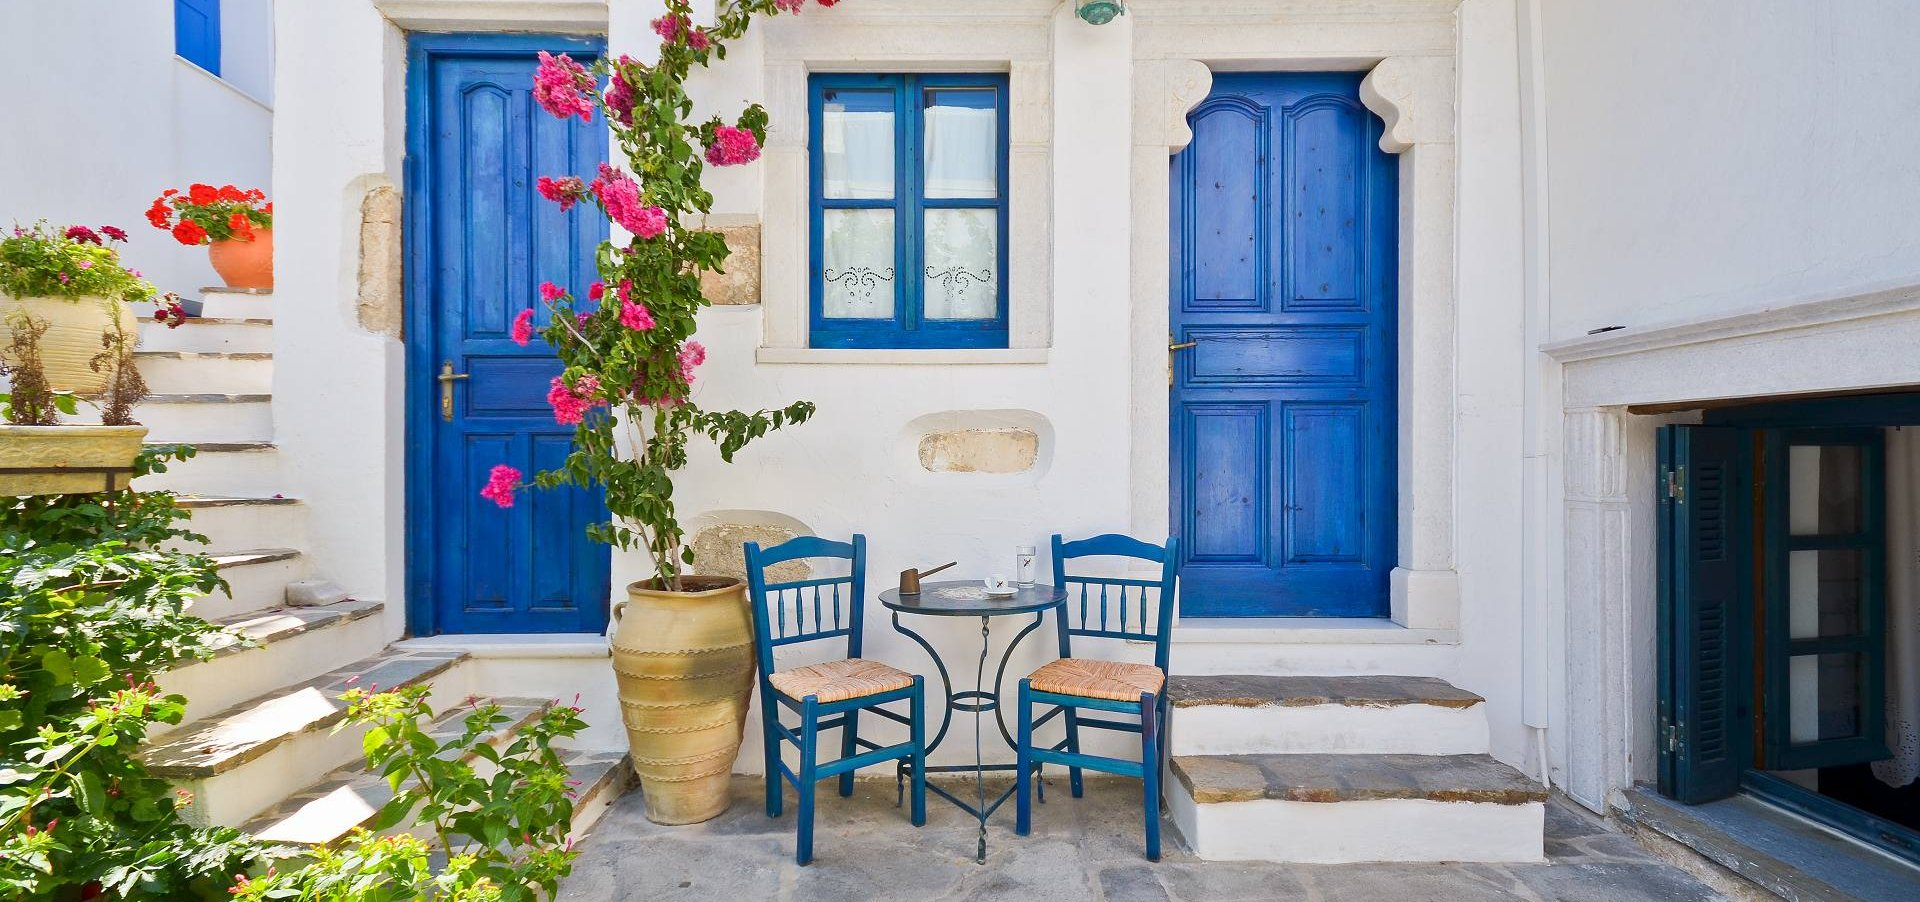 Venetiko Apartments in Naxos